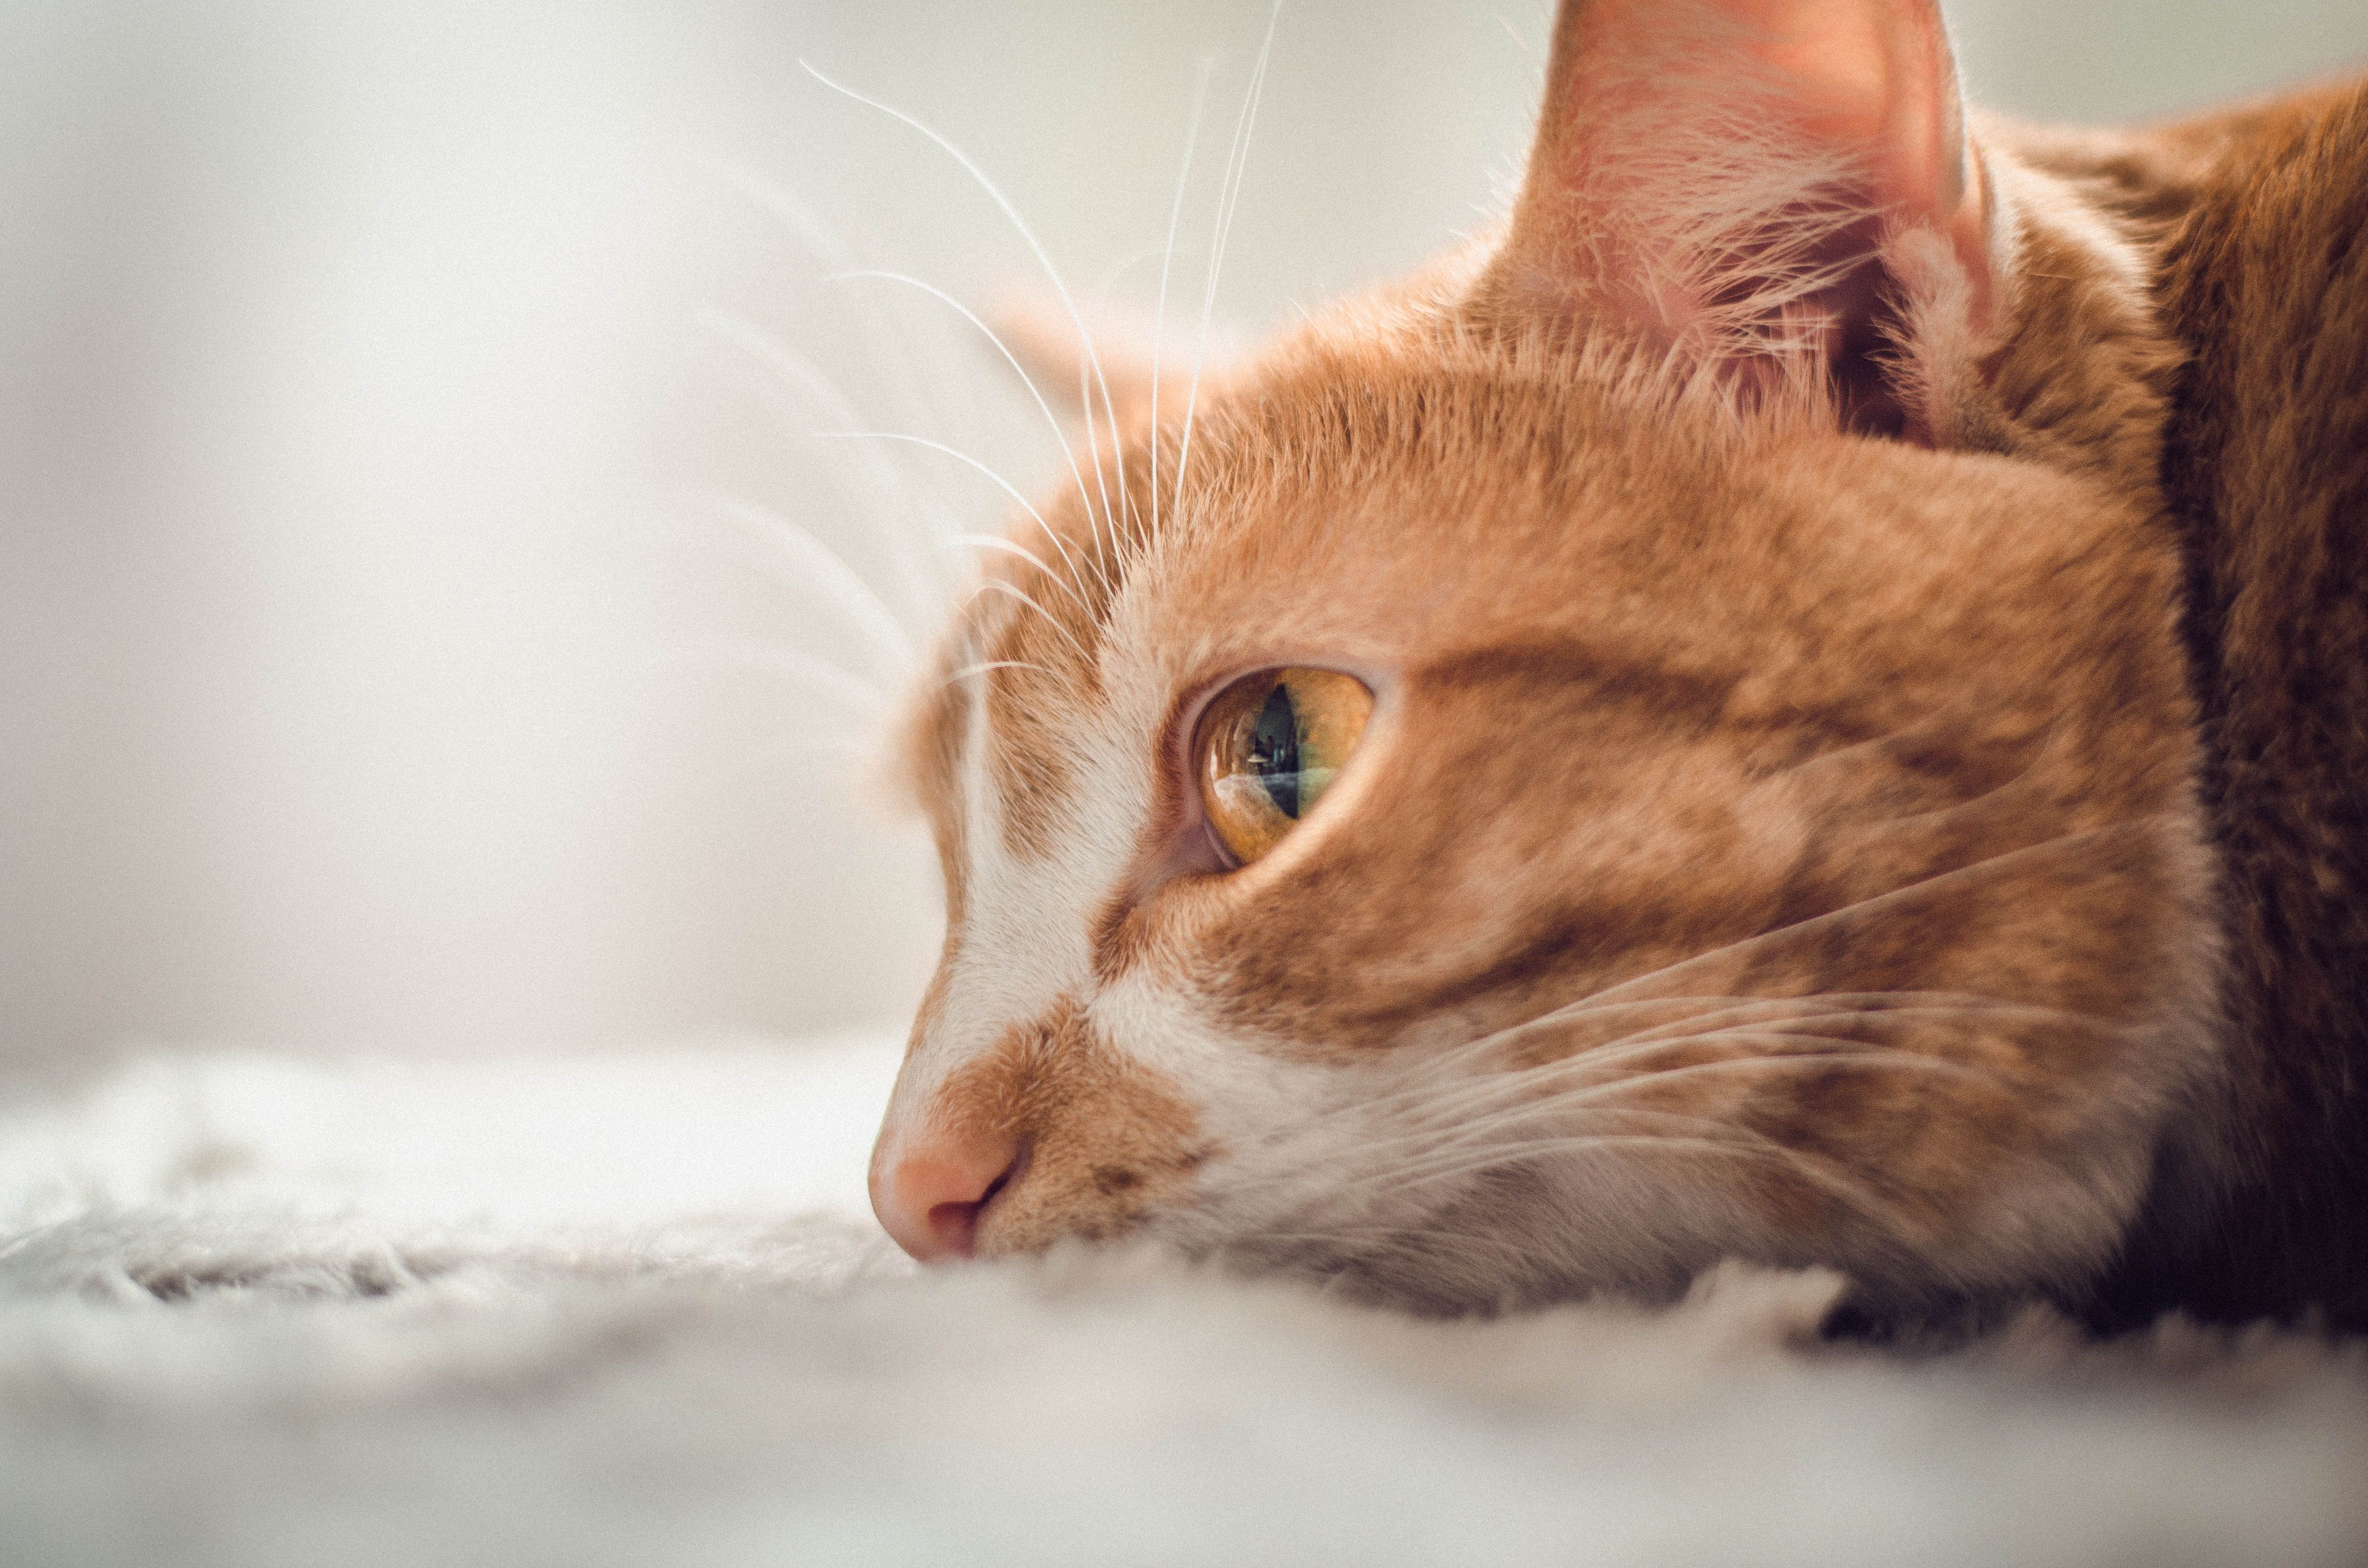 A cat's eyes have the power to speak a great language